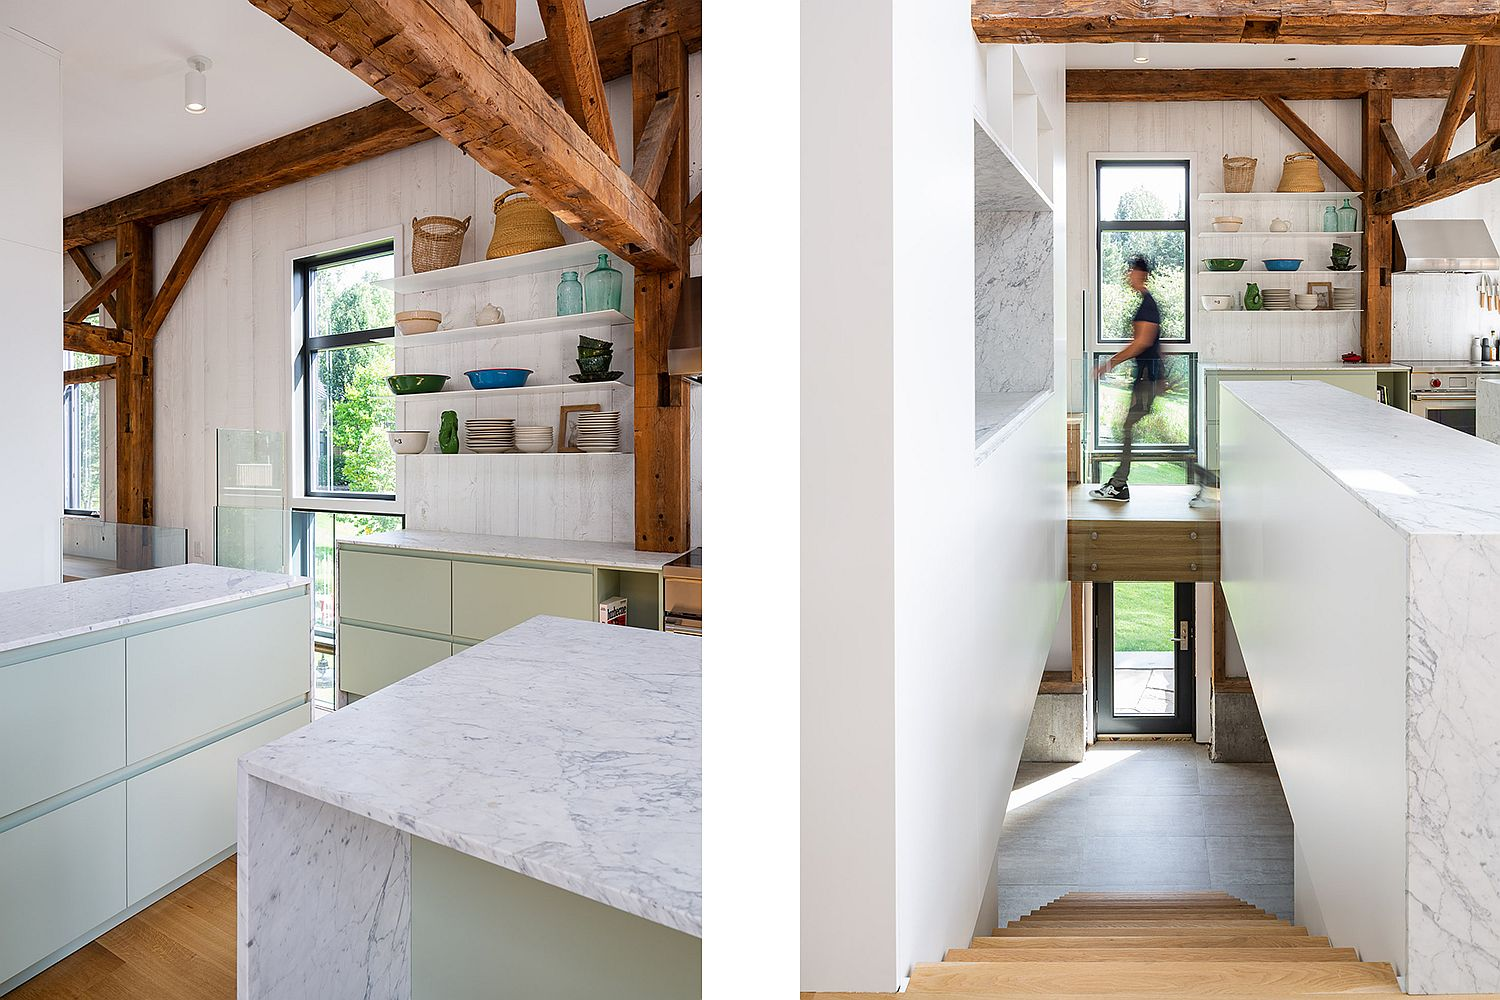 Look at the gorgeous kitchen in white with wooden beams all around